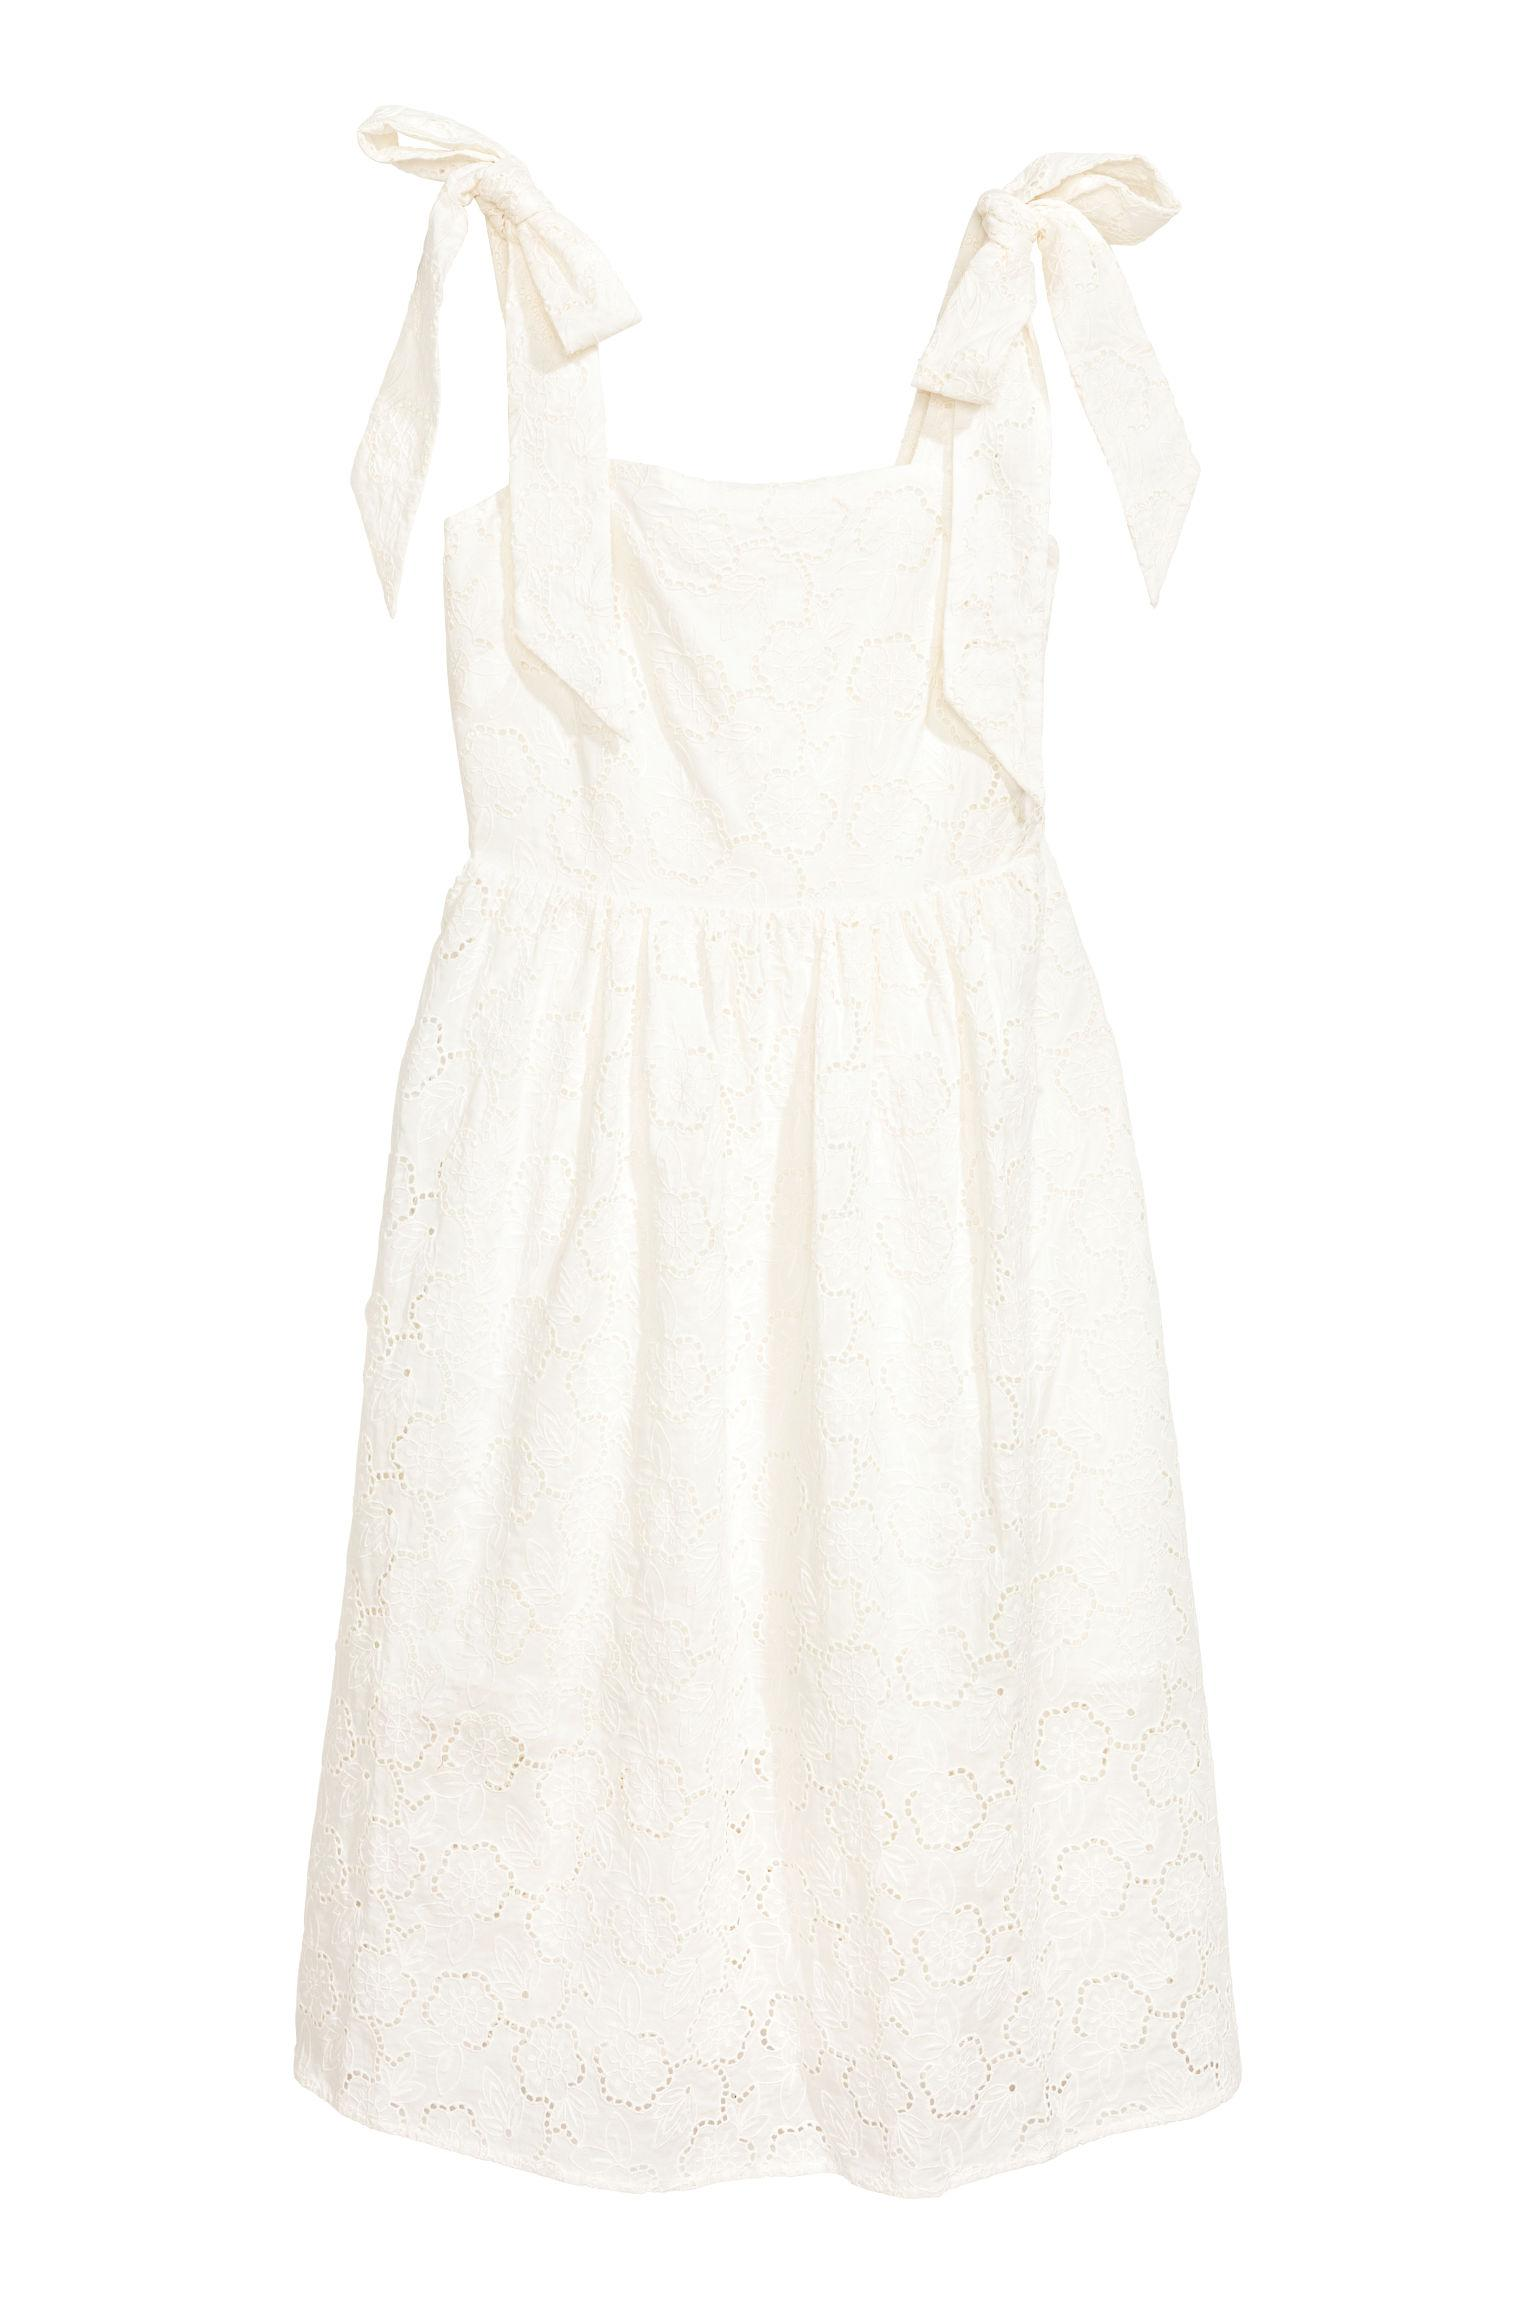 H Amp M Cotton Dress With Broderie Anglaise In White